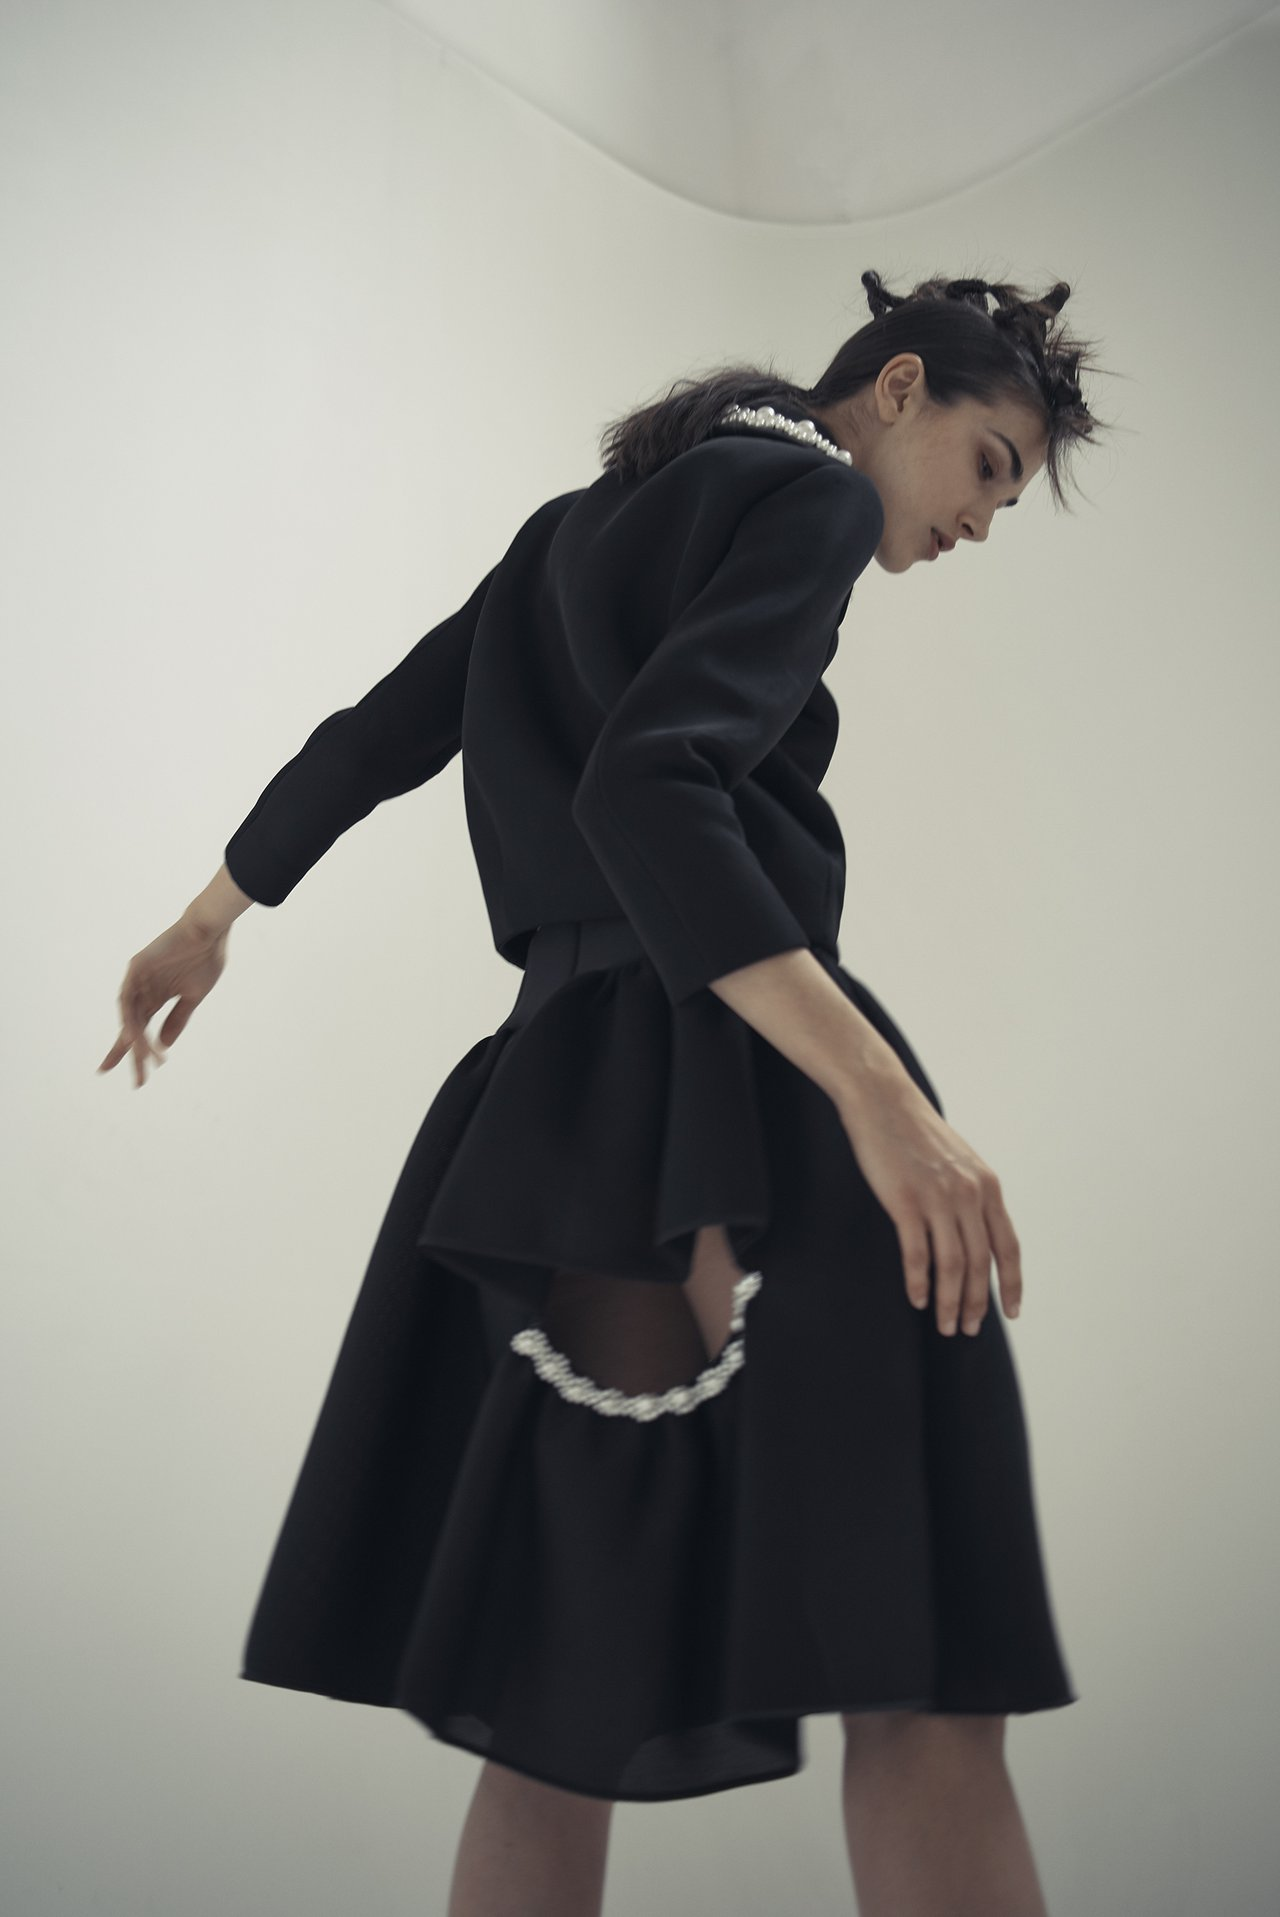 Model Ana Buljevic photographed by Rob Rusling in an ensemble from Simone Rocha's Spring 2014 collection